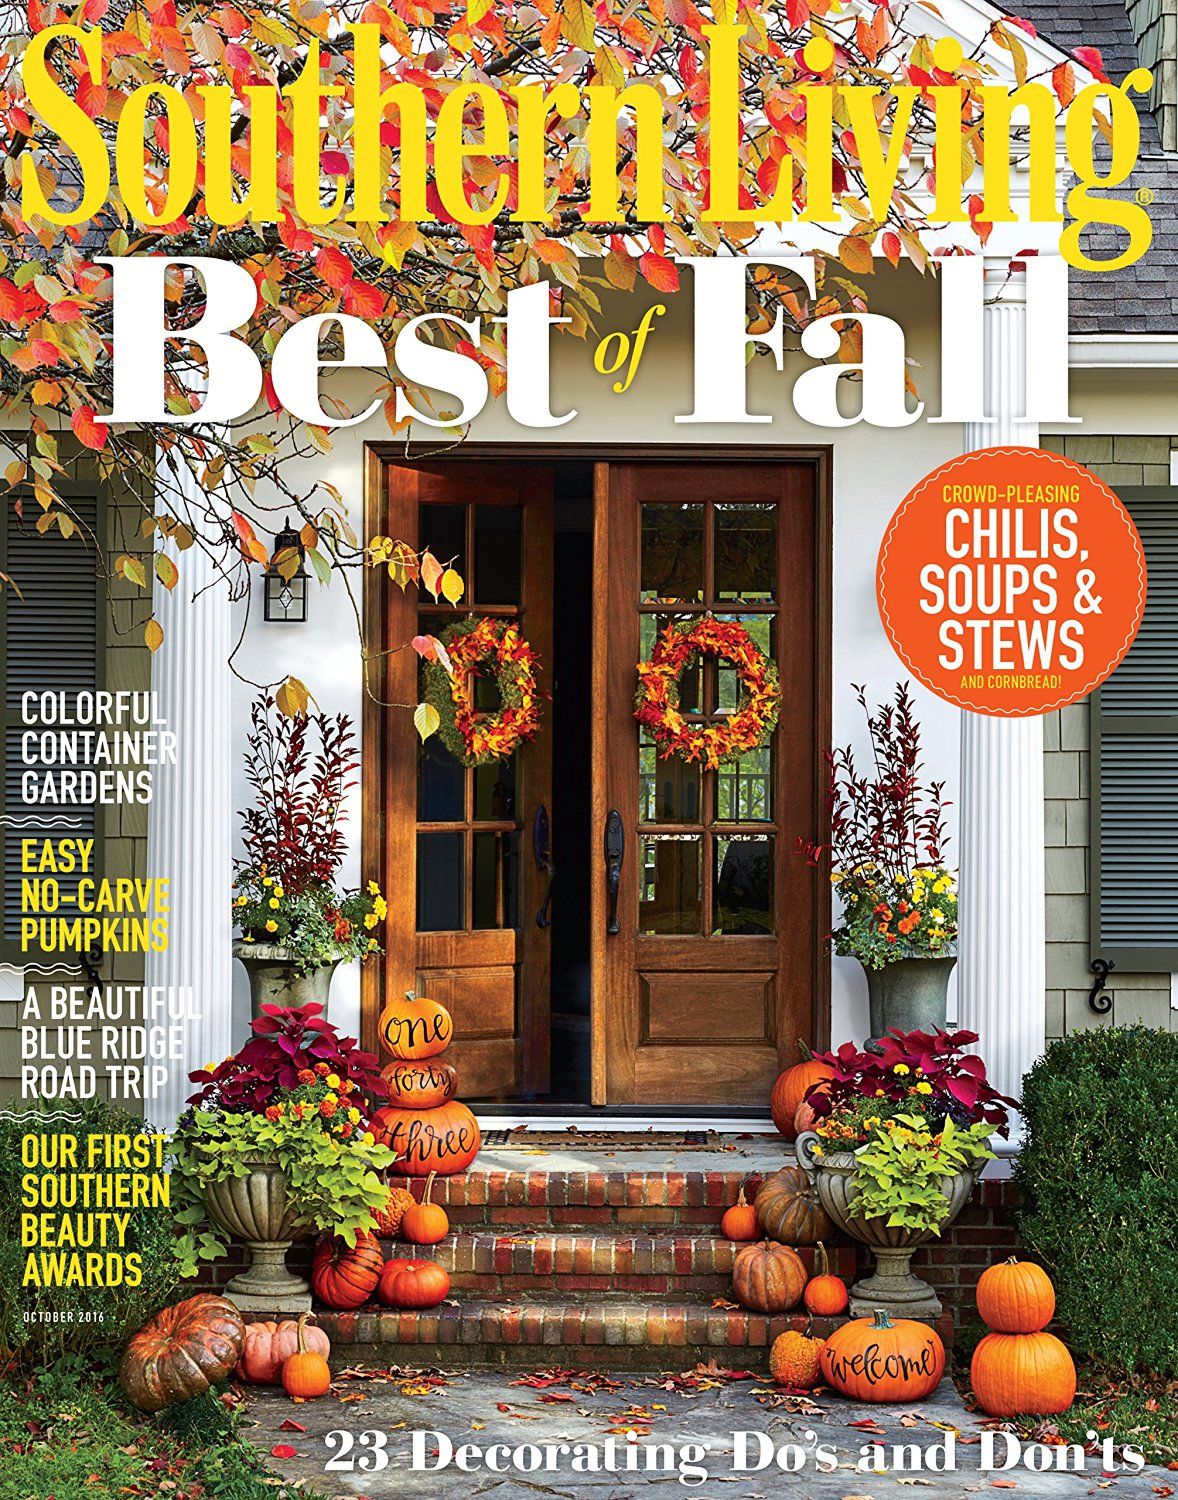 $5 Magazine Subscriptions To Best Seller Include Entrepreneur Magazine,  People, Bloomberg Business Week, Southern Living And Many More.